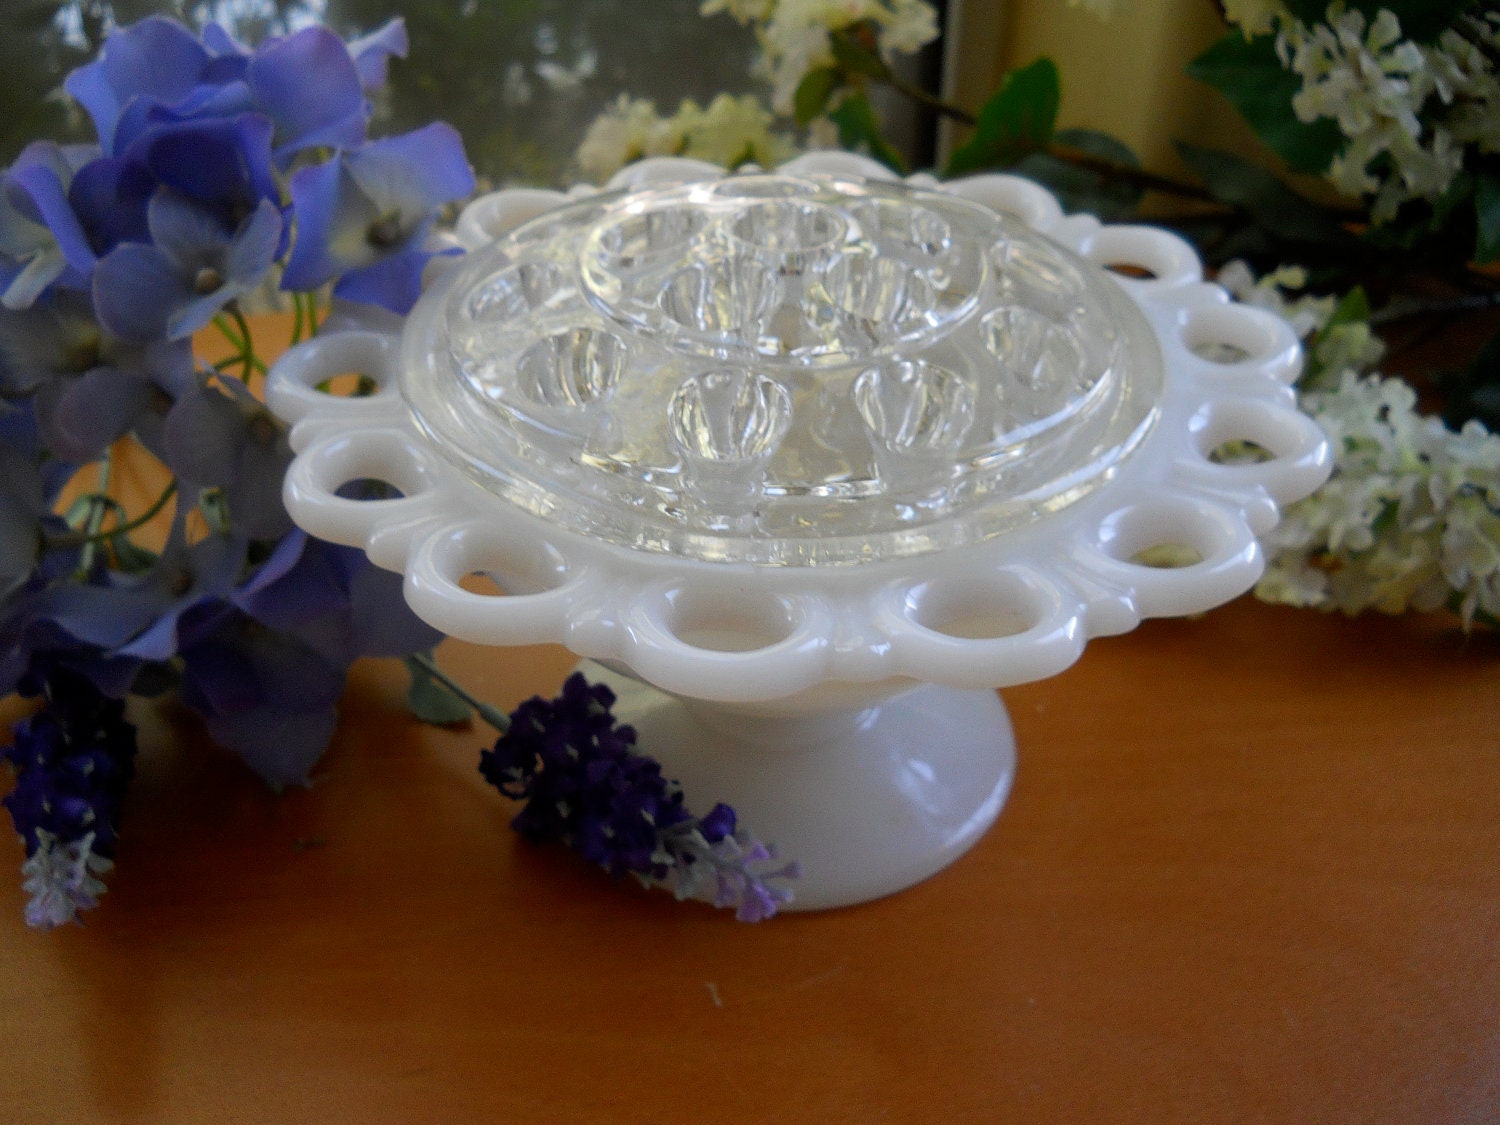 Vintage White Milk Glass Flower Bowl Or Vase And Glass Flower